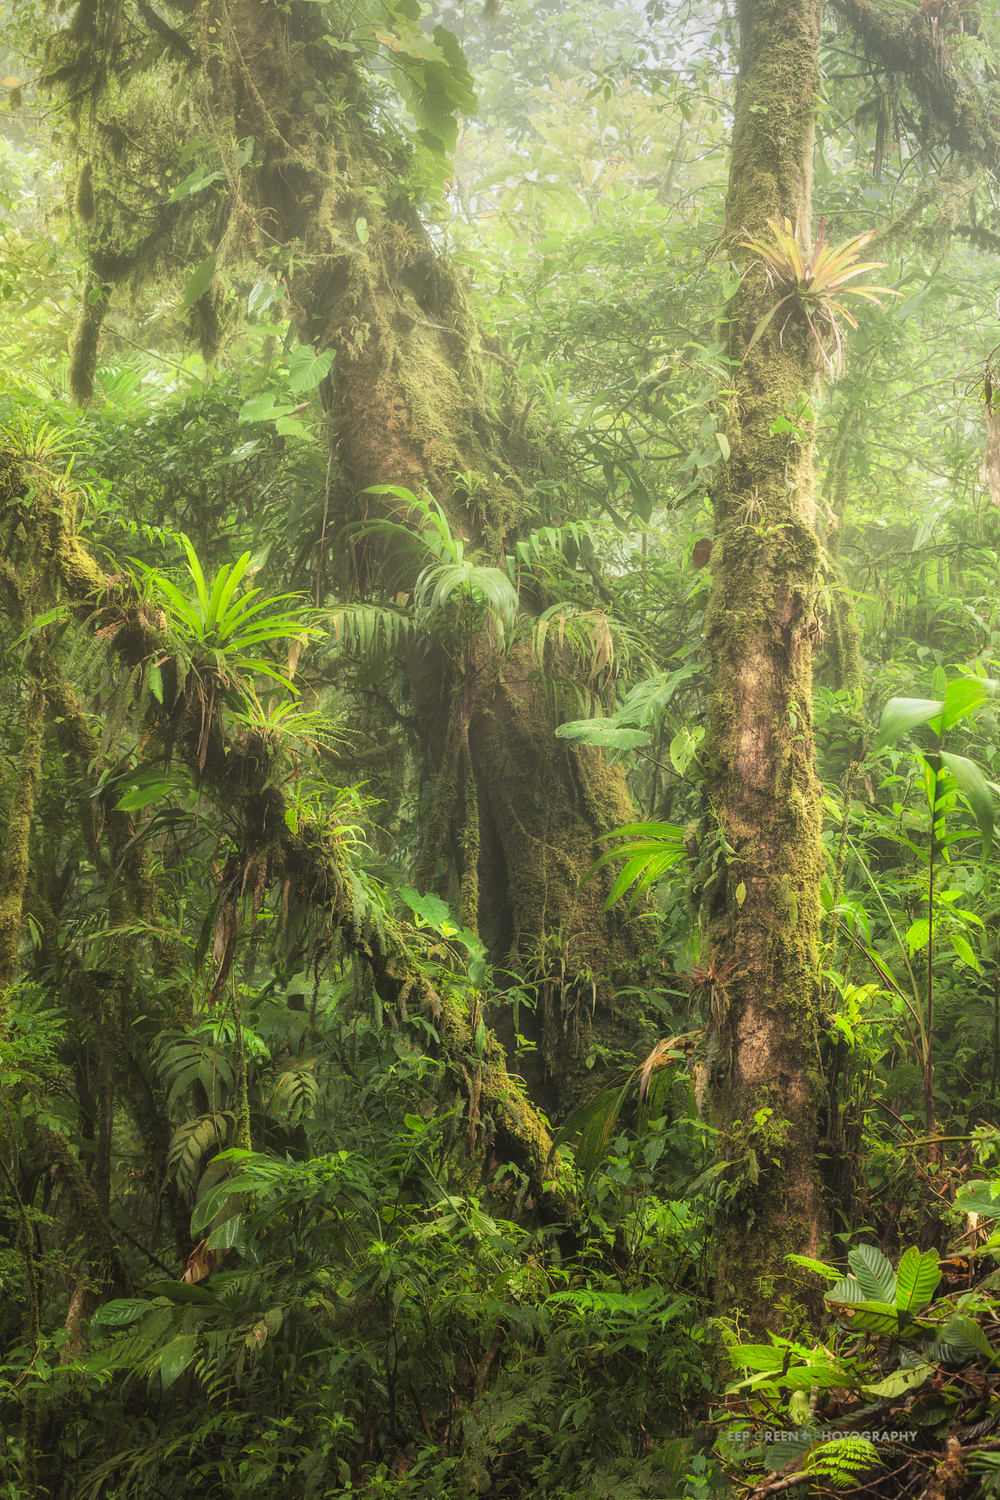 lush vegetation on a misty day in the Monteverde Cloud Forest Preserve